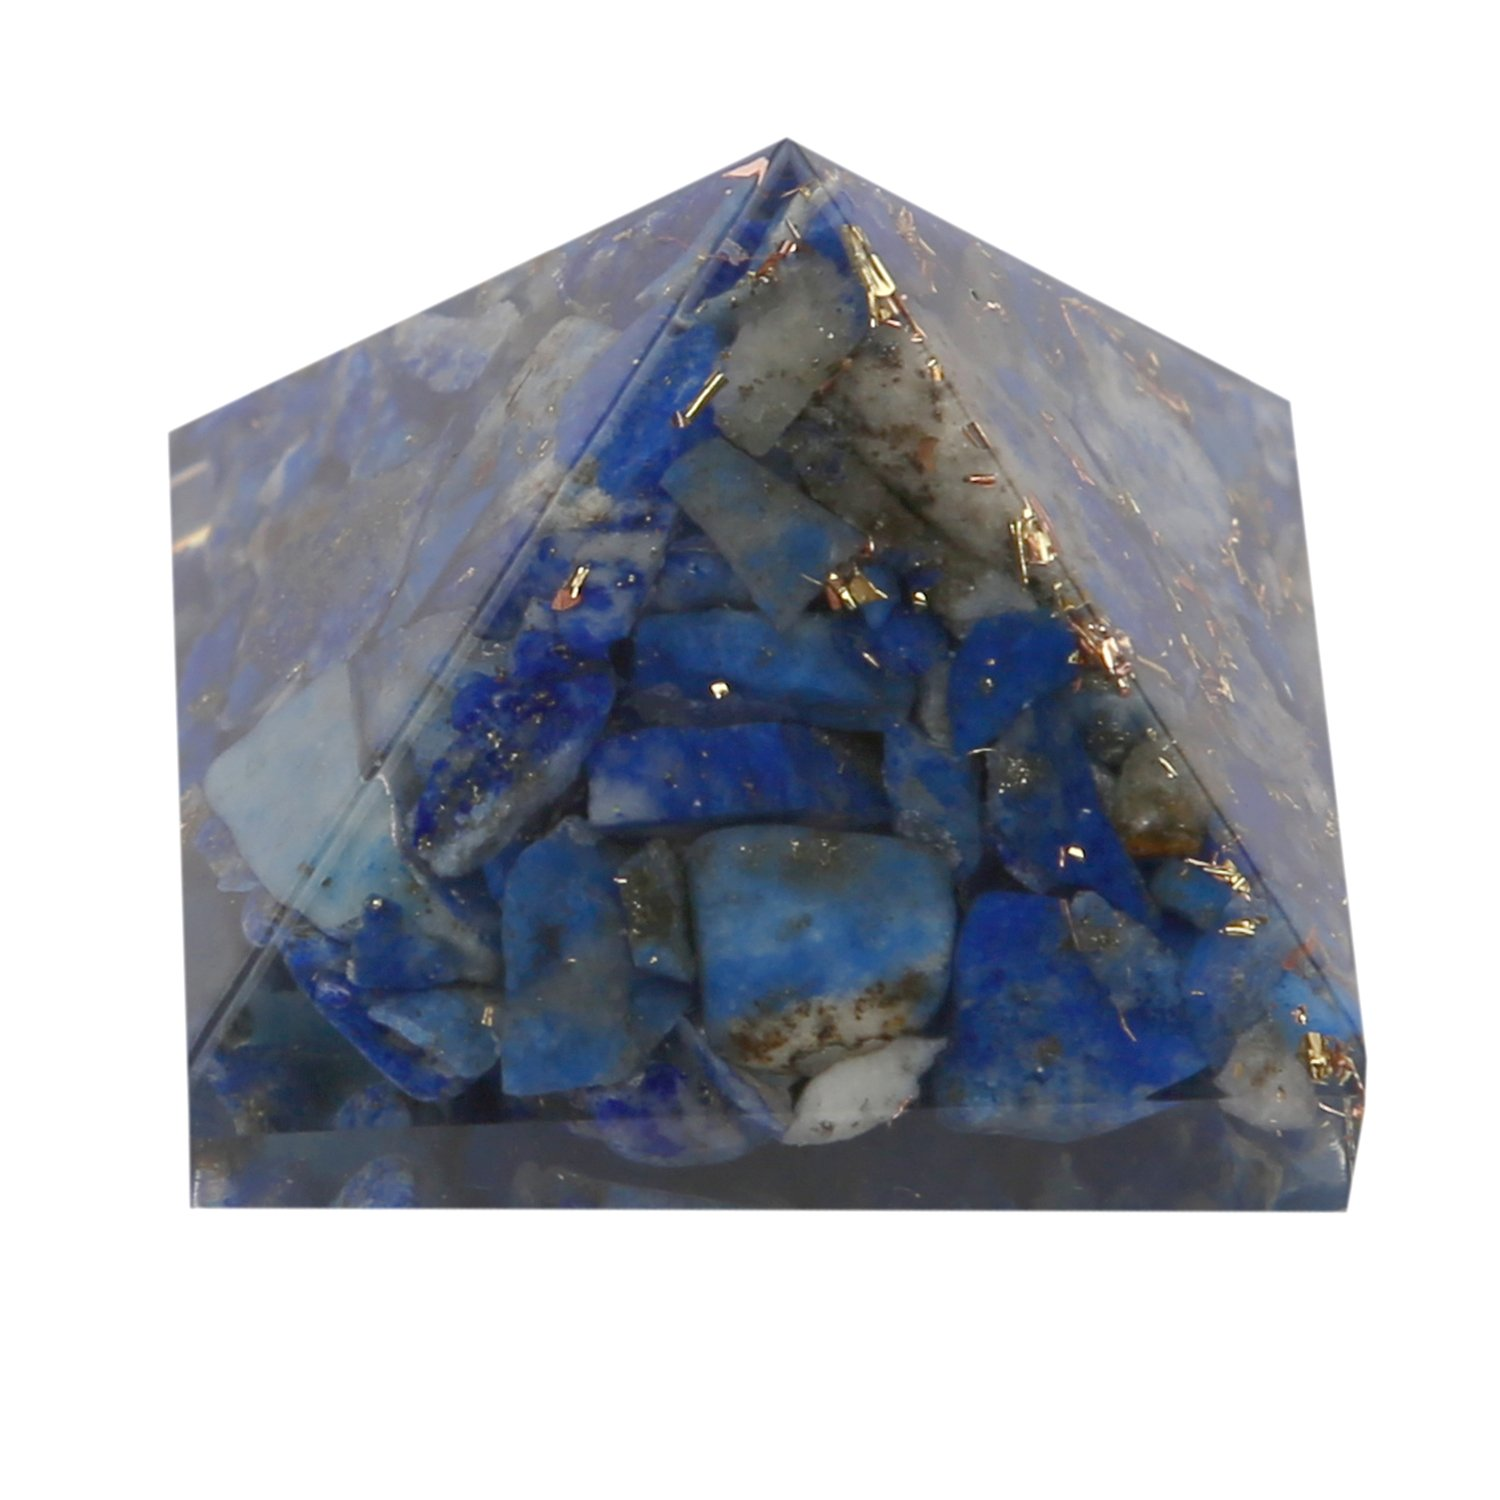 Aatm Reiki Energiezed Lapis Lazuli Orgone(1inch) (for Enlightenment & Balancing) Aatm Collection GAPC-109